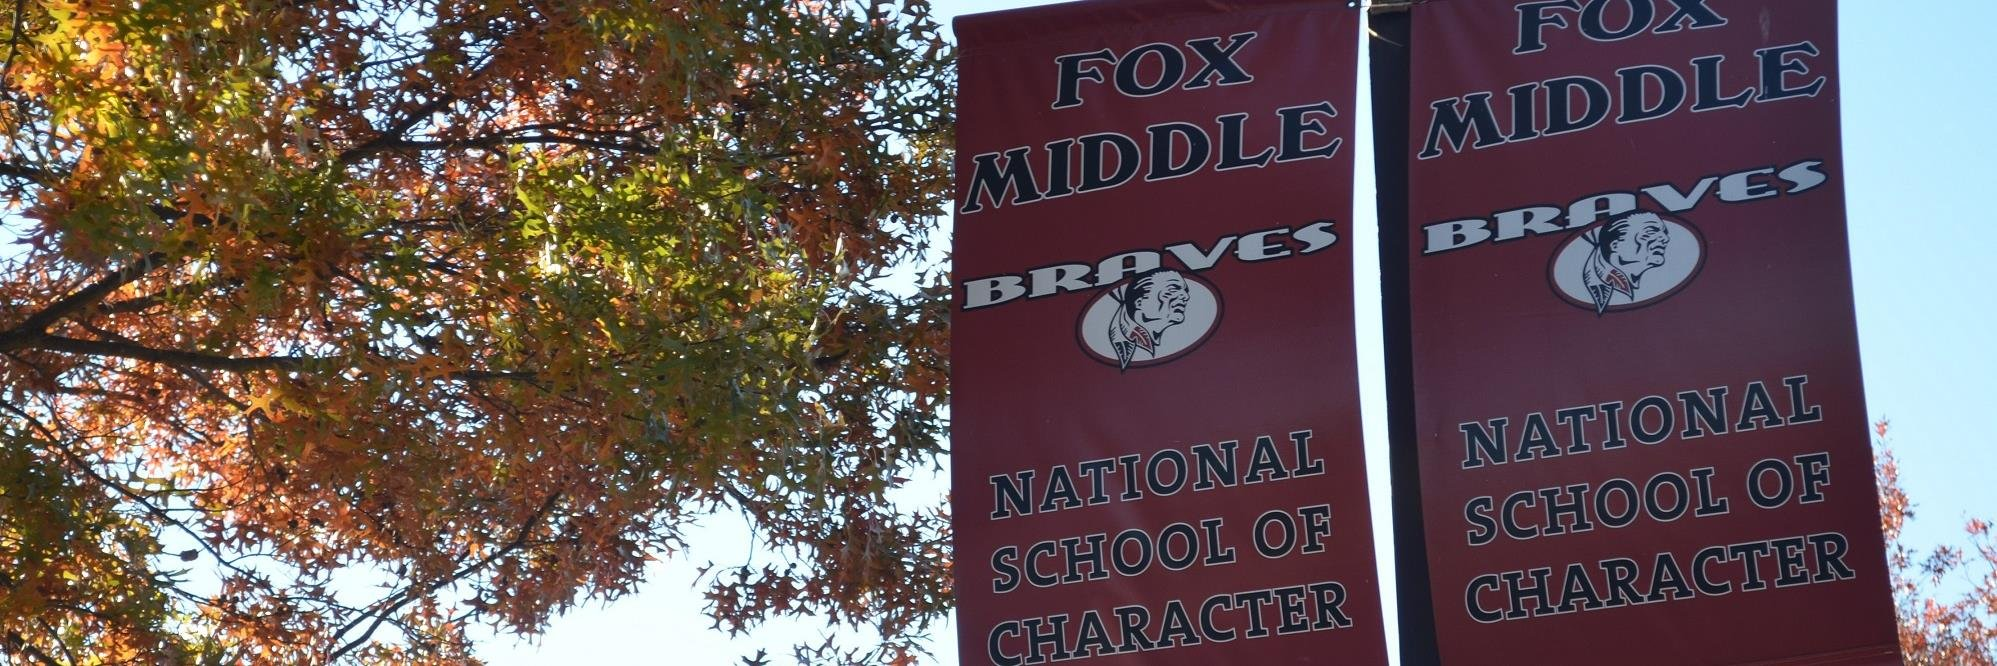 On this Thankful Thursday, we want to express how much we appreciate the entire Fox Middle School community. Teamwo… https://t.co/u73DHELd7z